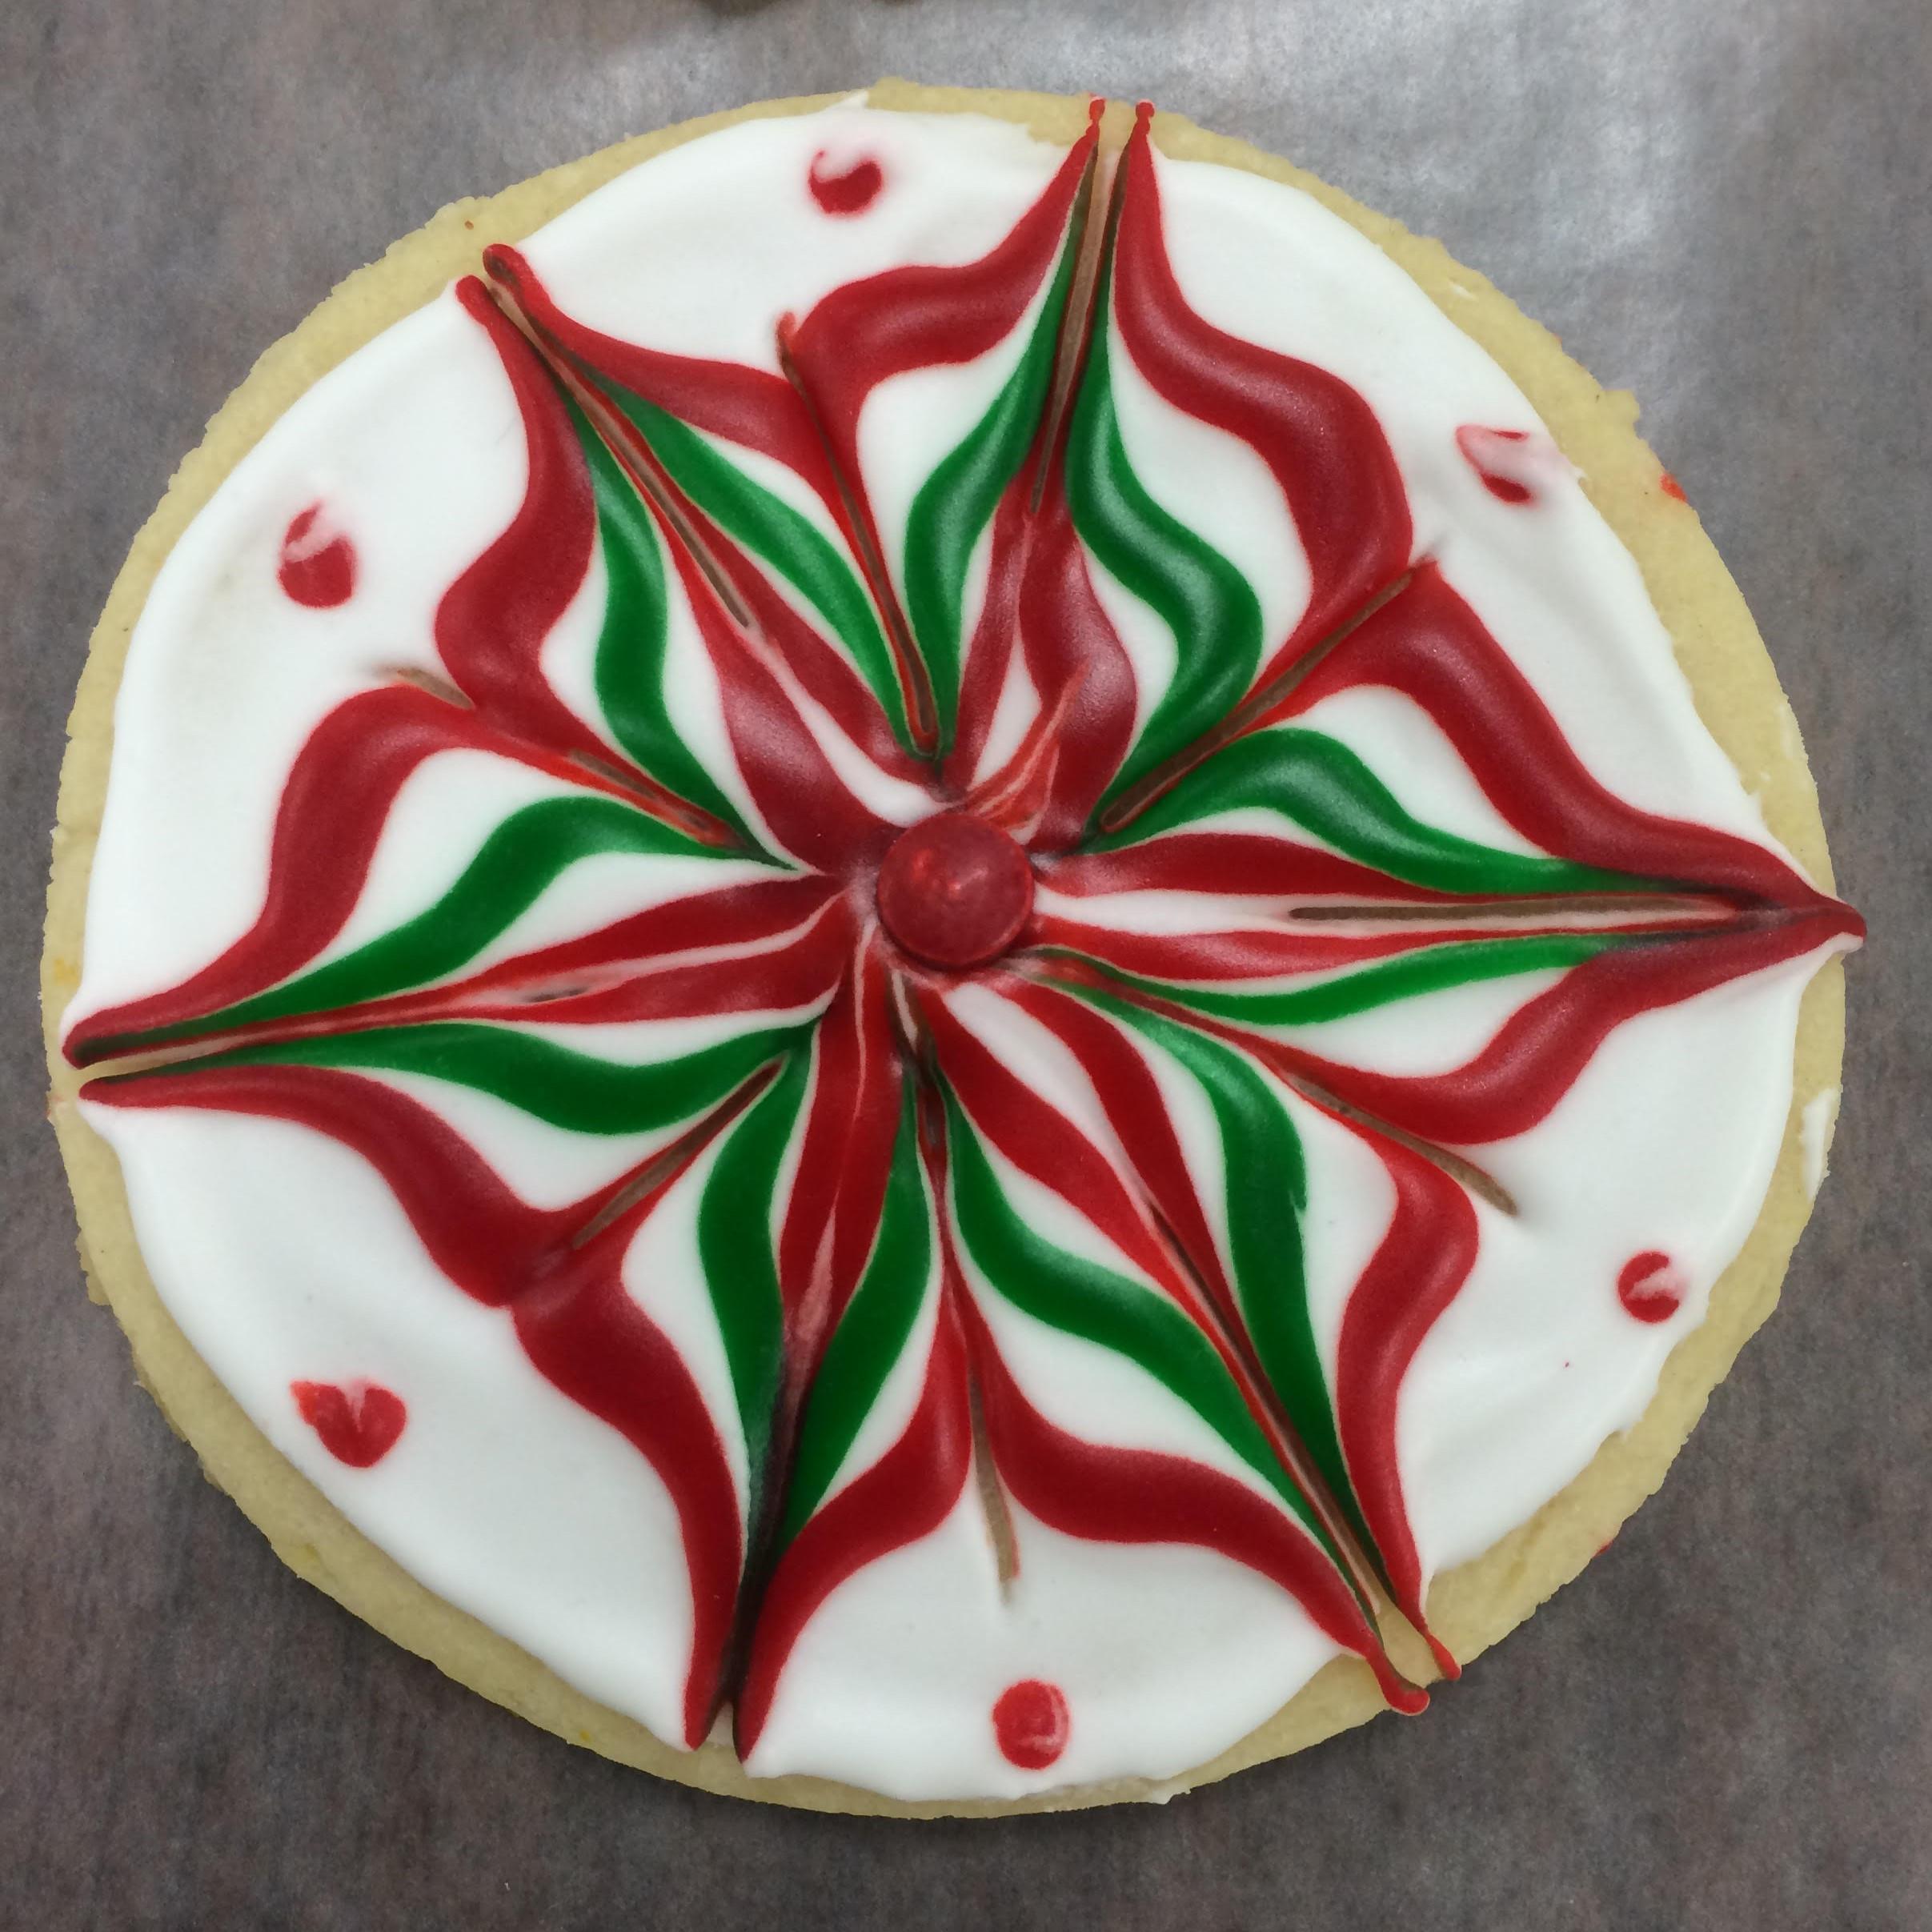 A Christmas Cookie